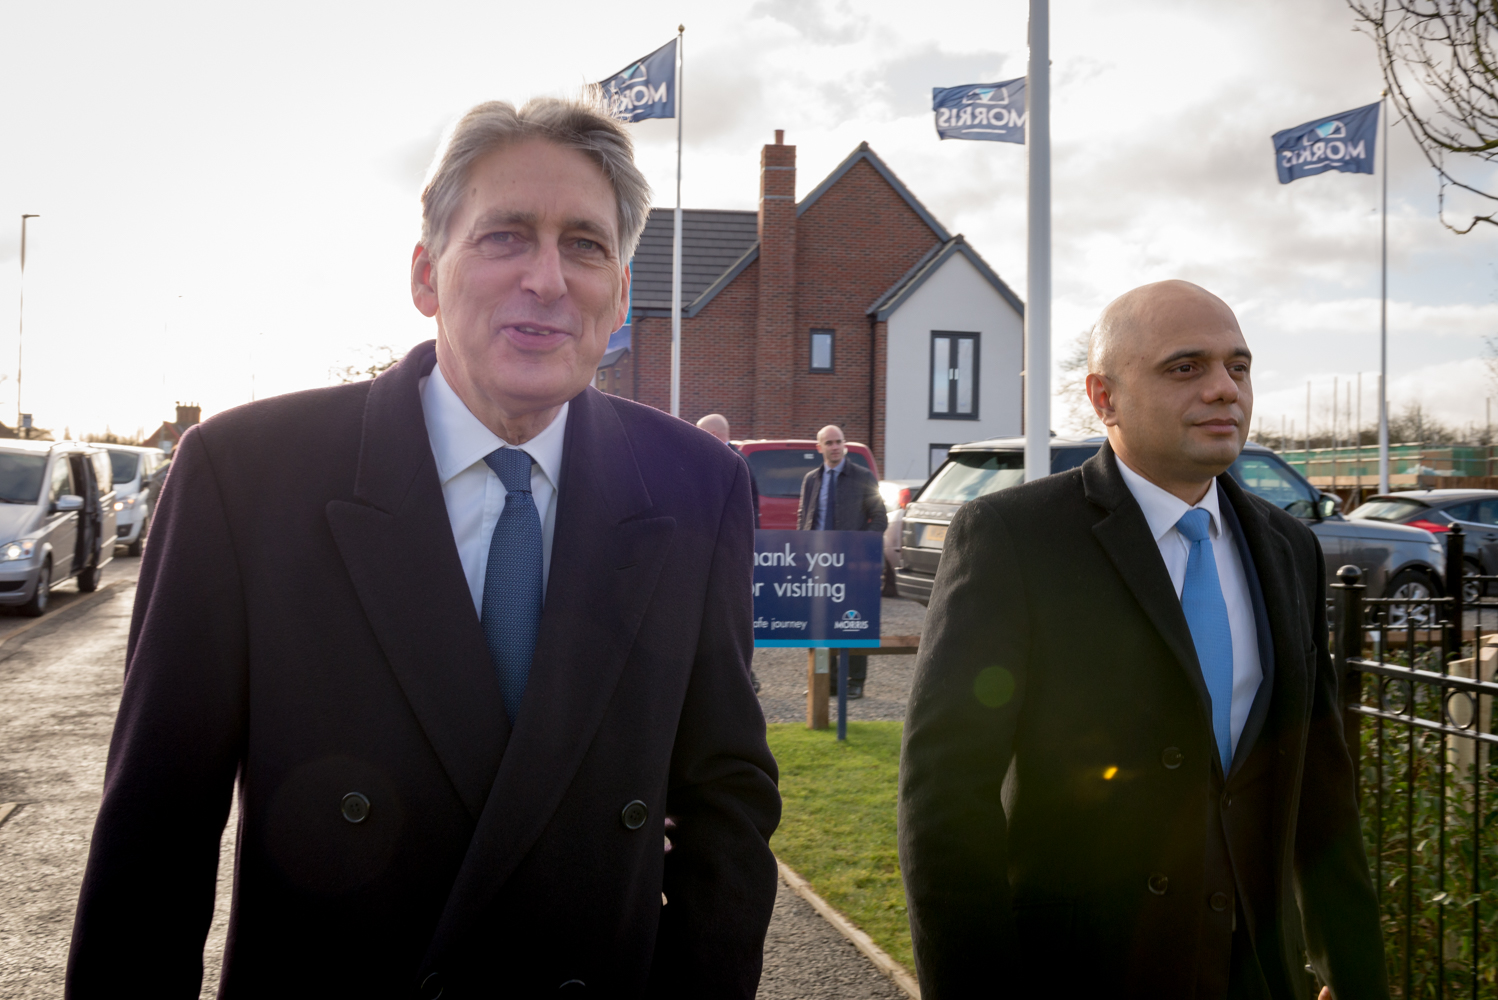 Phillip Hammond and Sajid Javid visiting a Morris Homes building site in Leicester.